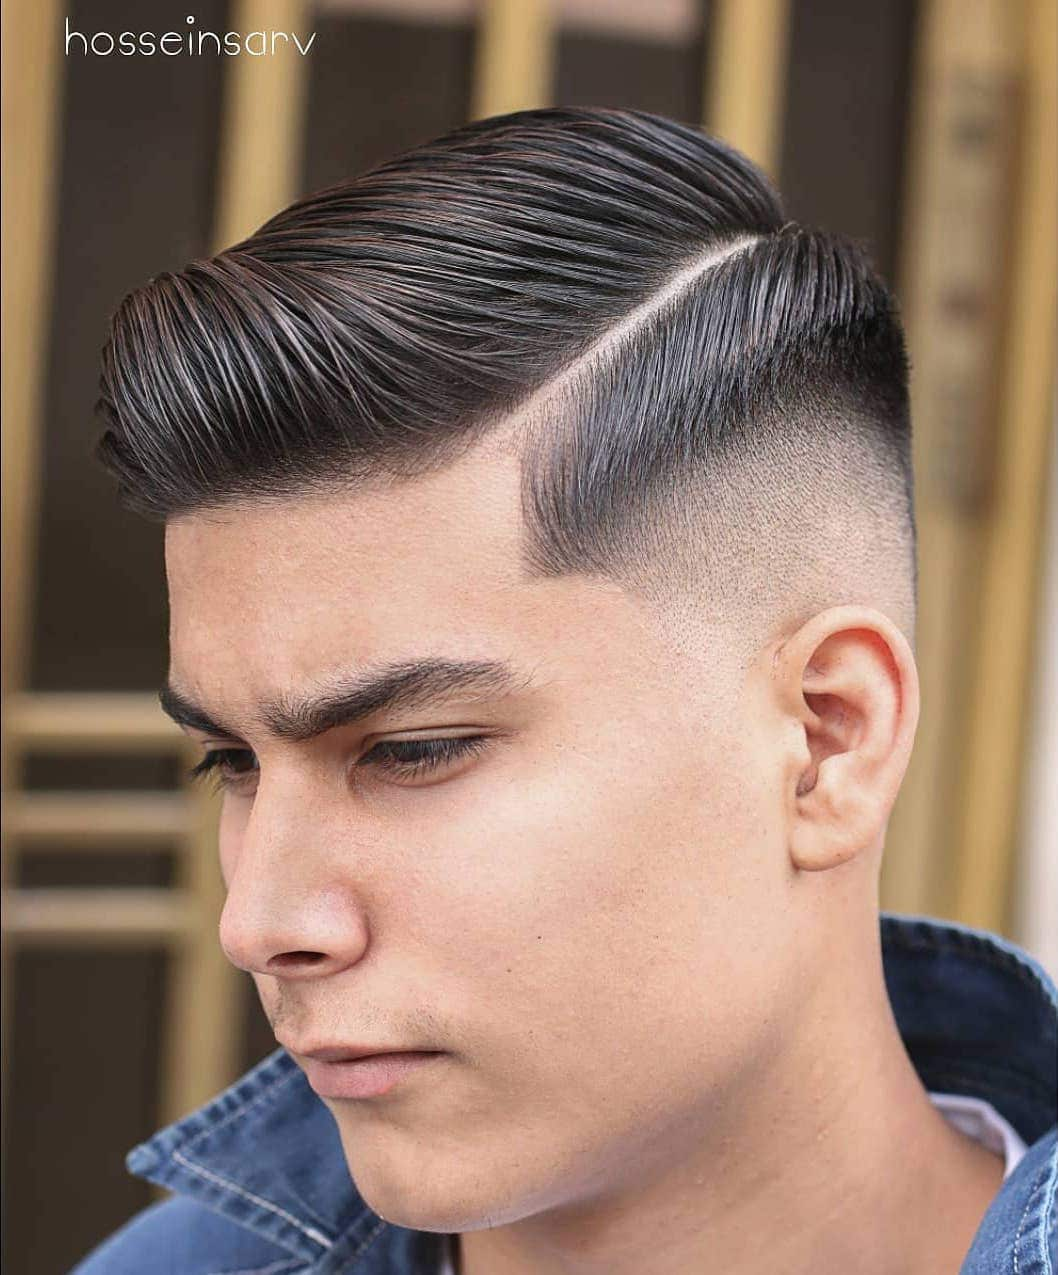 100 Best Men S Haircuts For 2021 Pick A Style To Show Your Barber